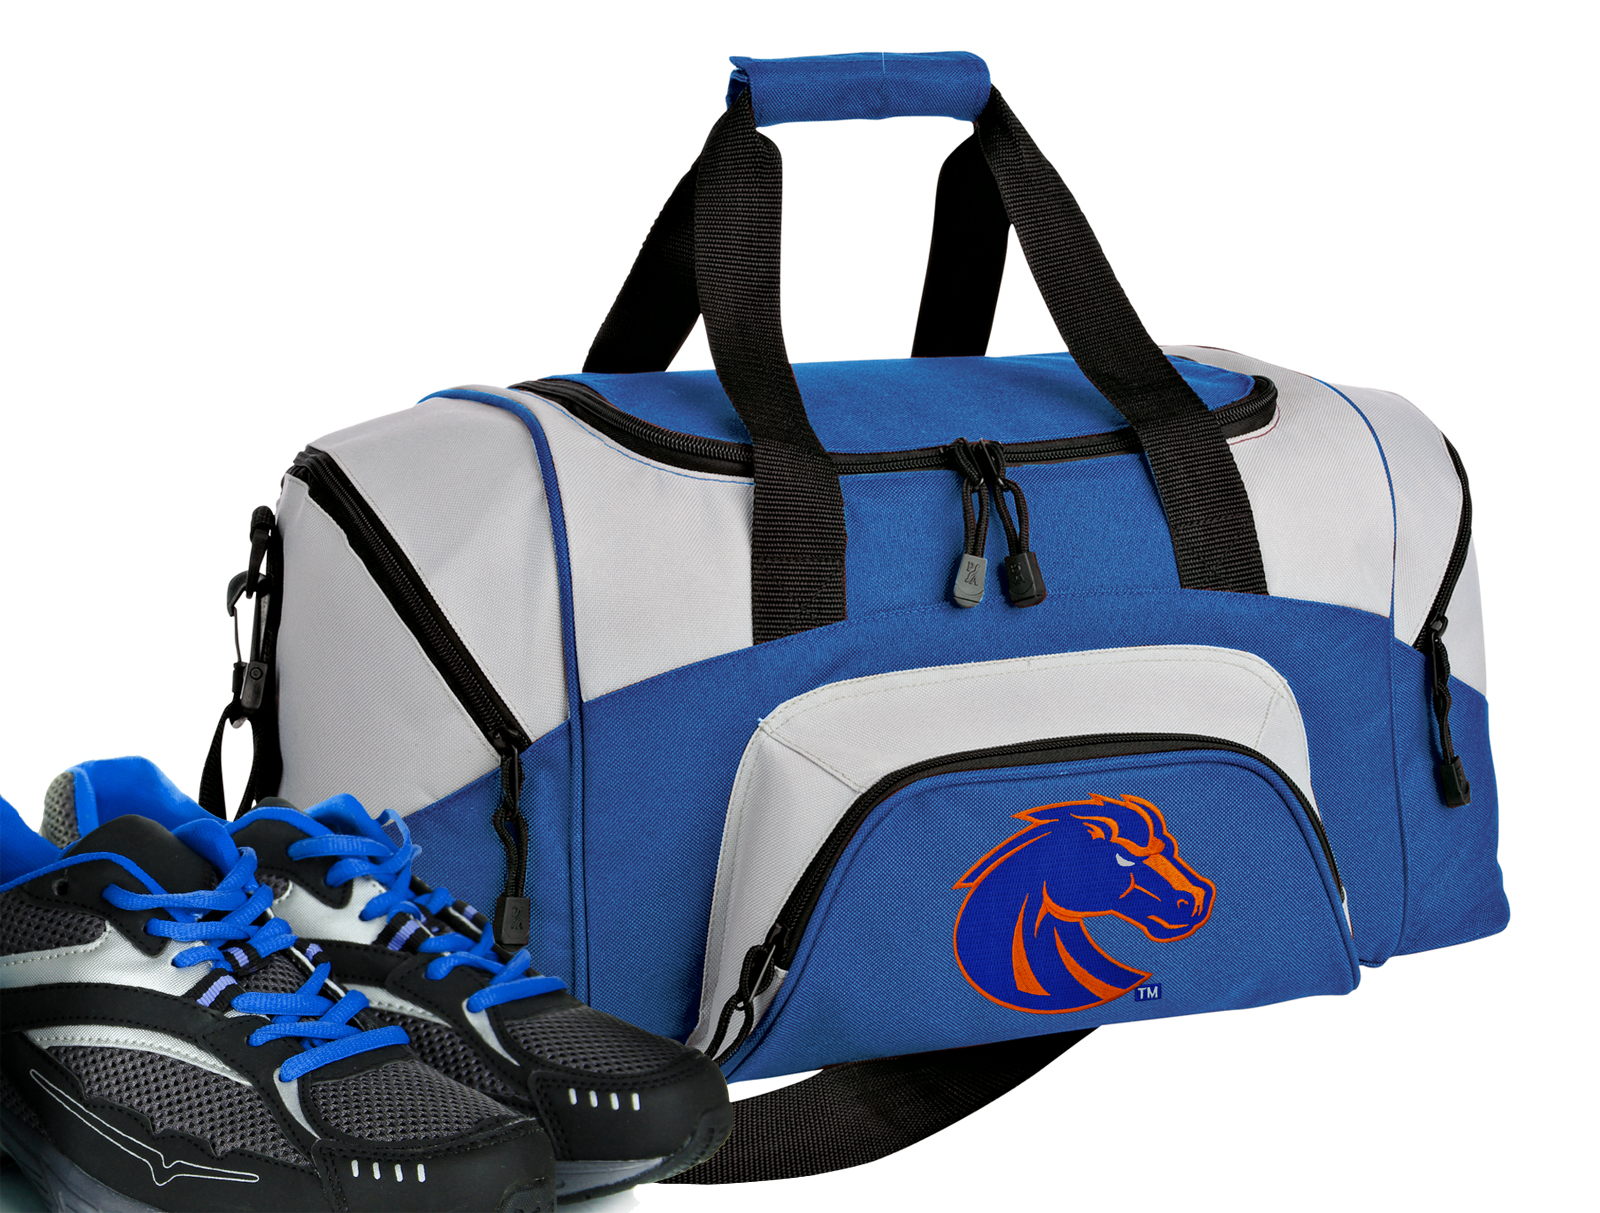 Small Boise State Gym Bag or Compact Boise State Duffel Bag by